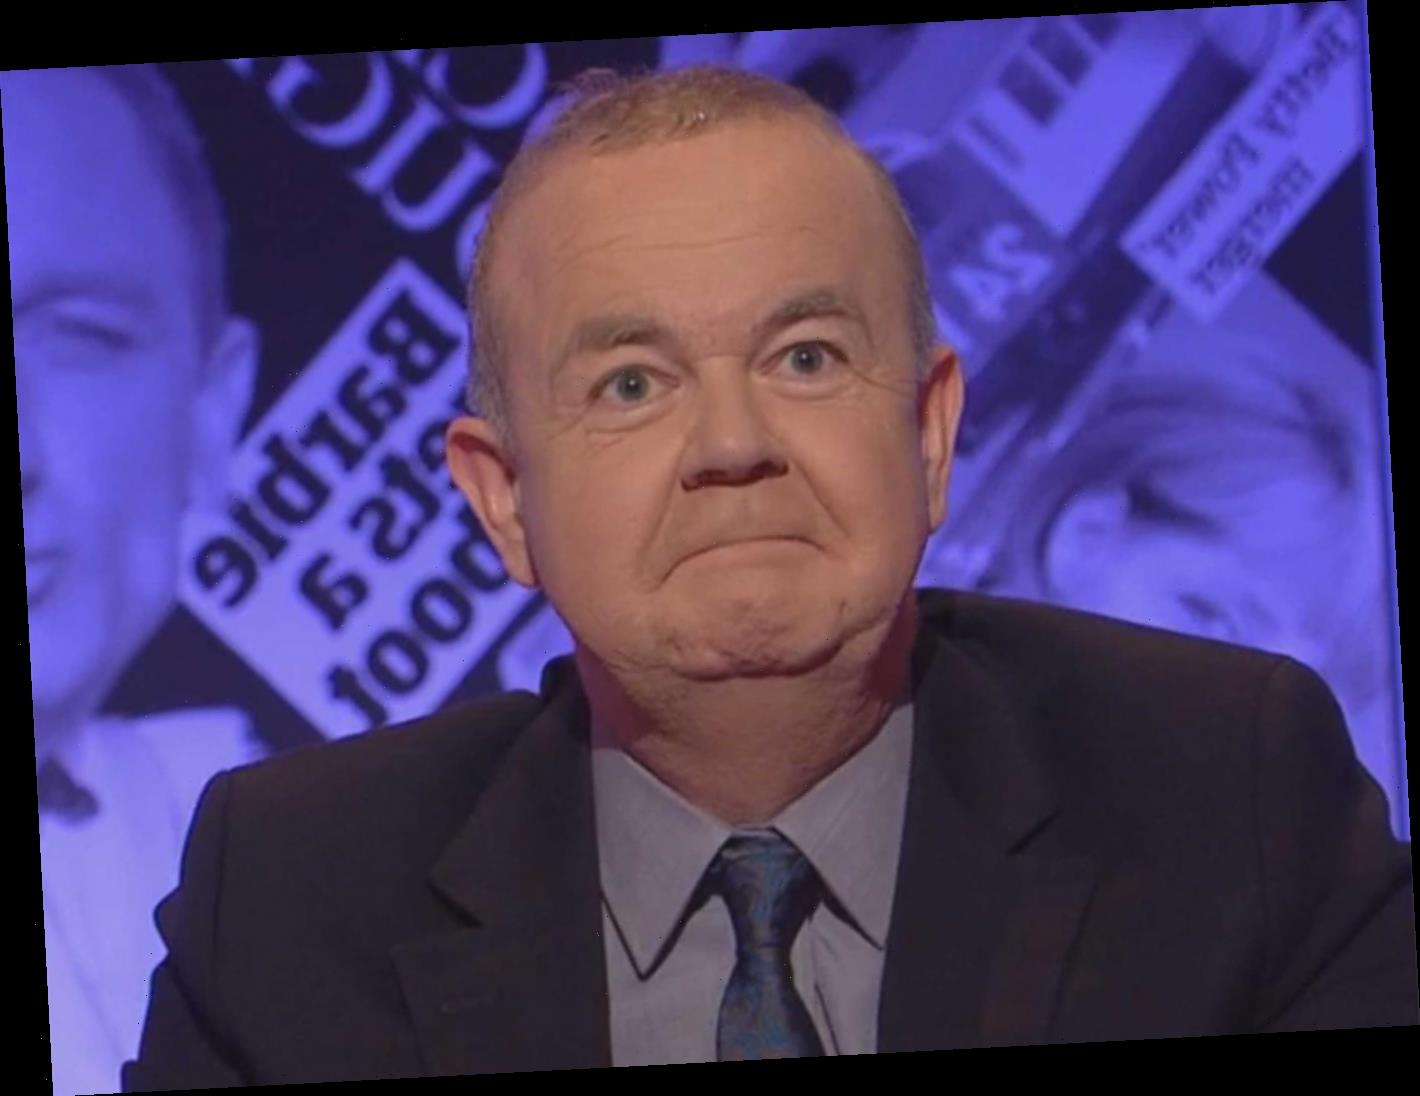 Who is Ian Hislop? Private Eye editor and Have I Got News For You team captain – The Sun